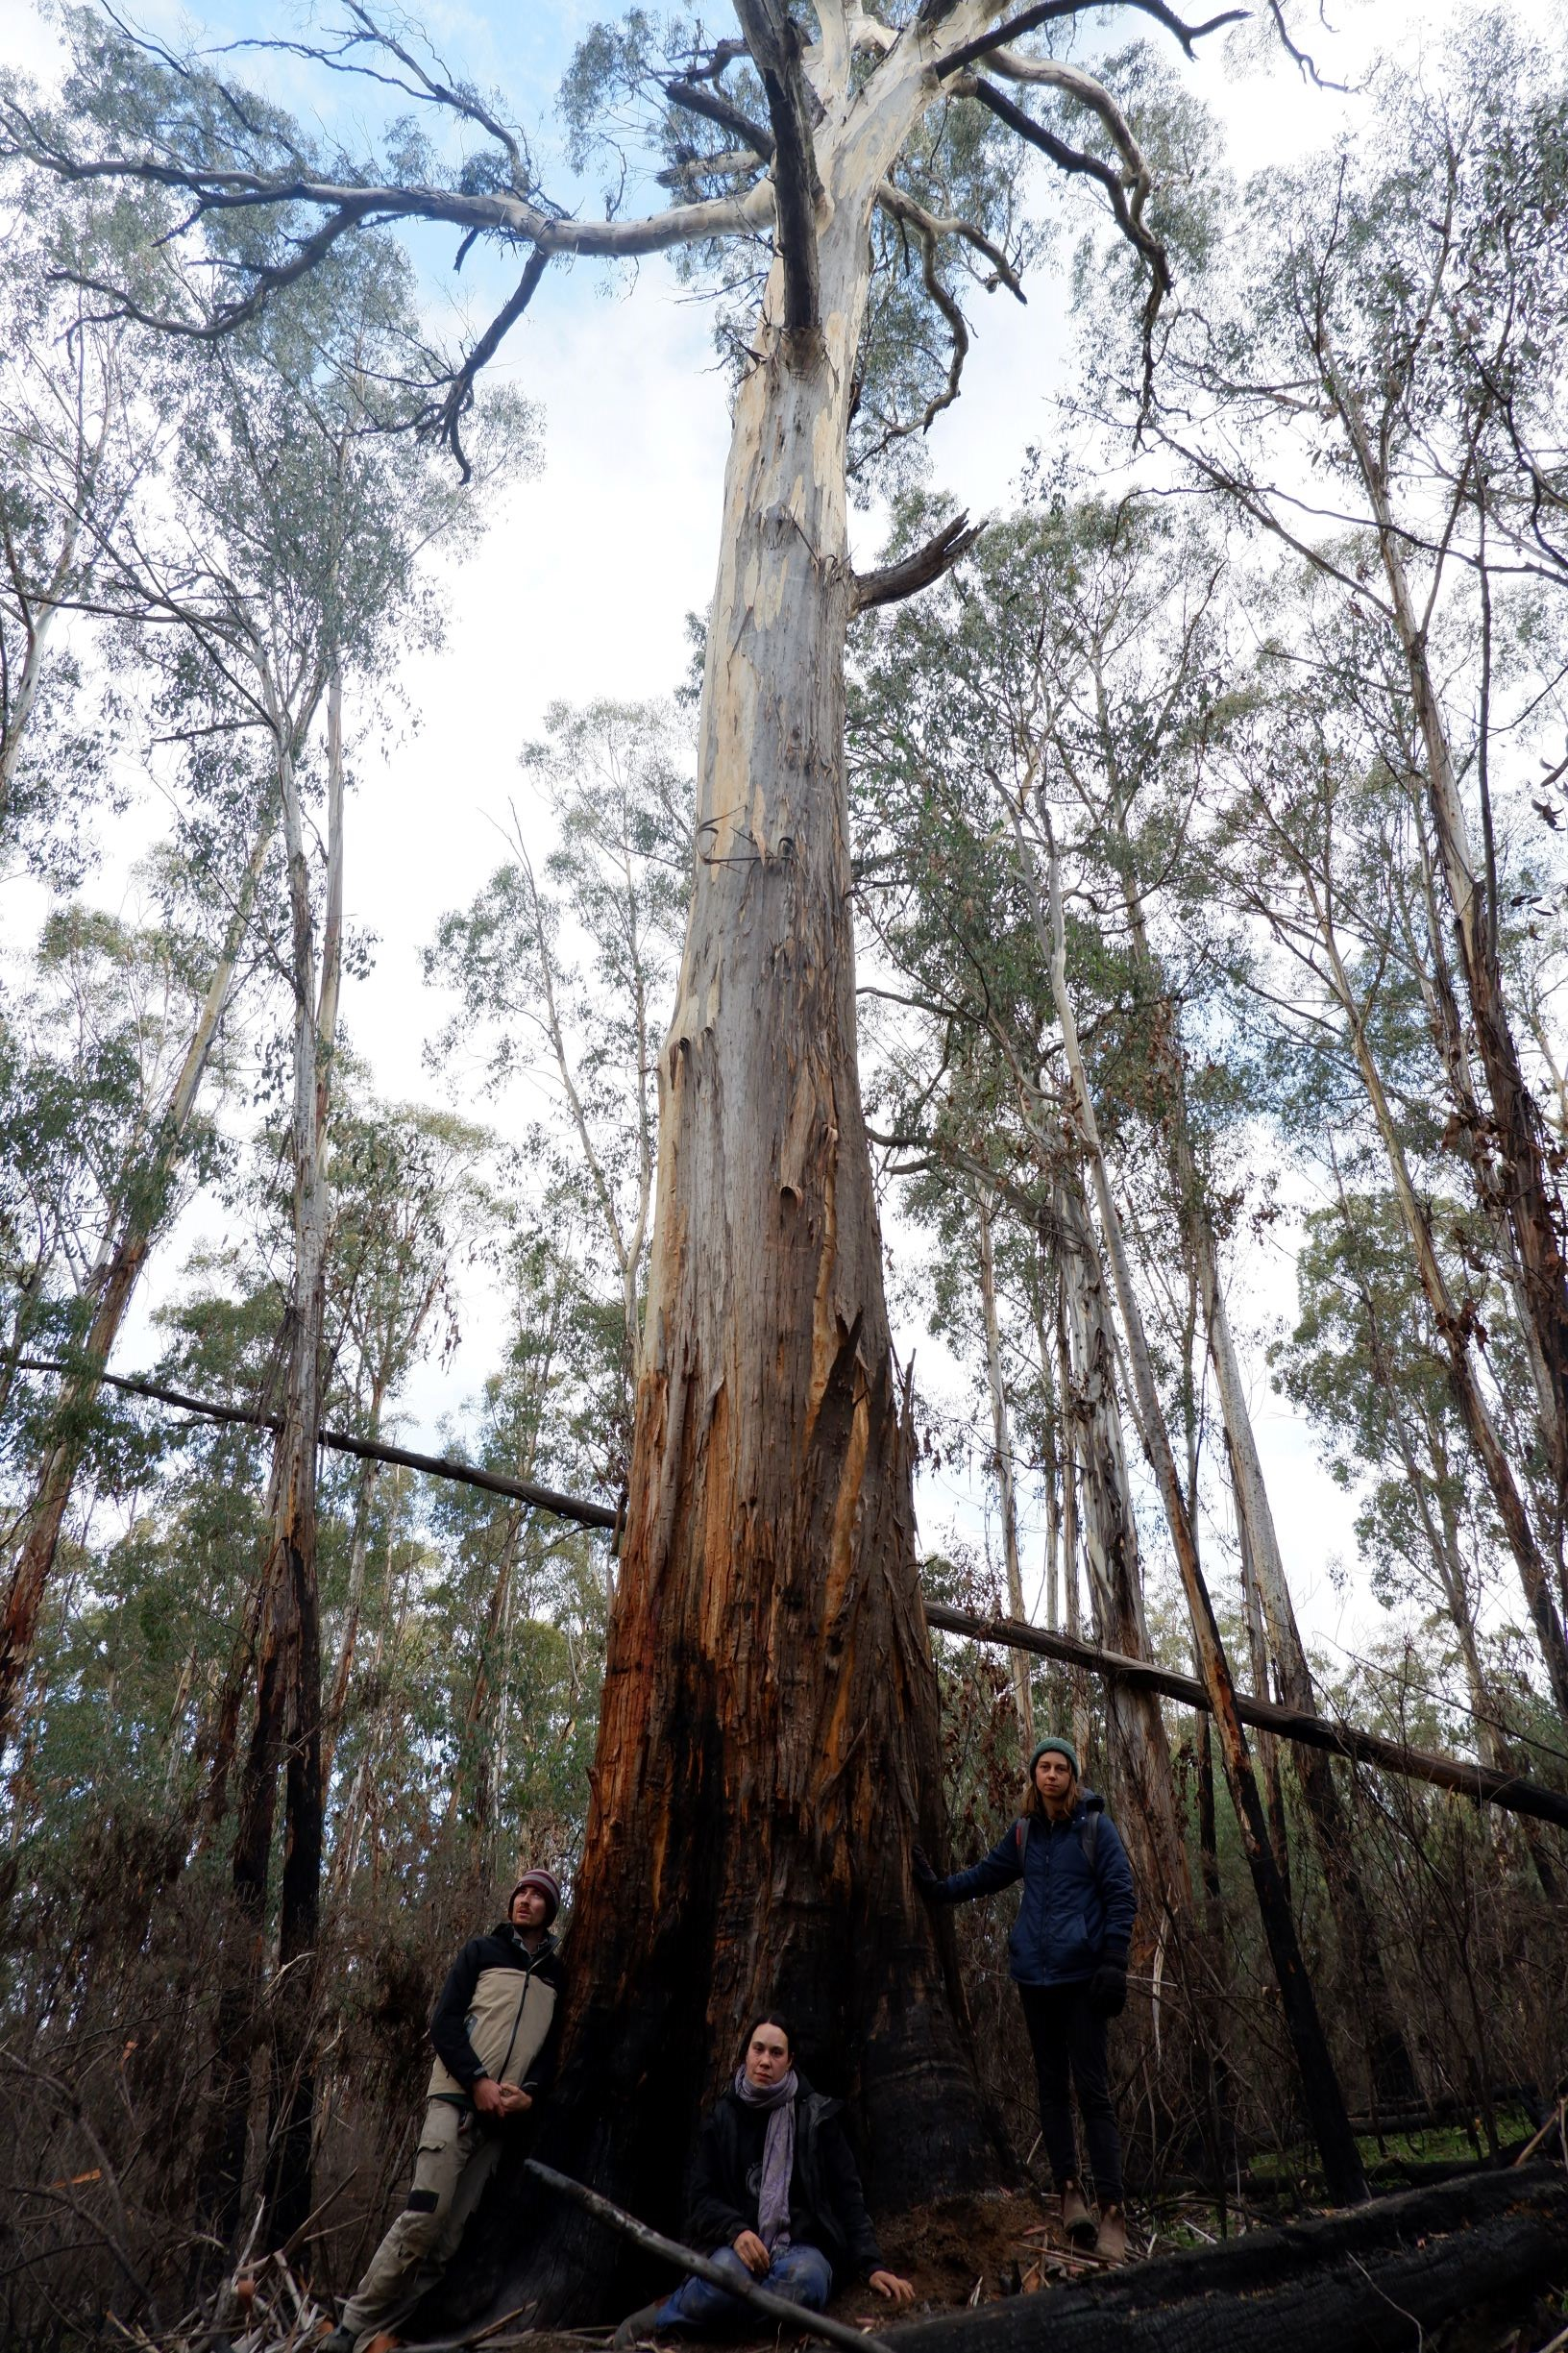 Sensitive fire-affected alpine forests scheduled for logging in the coming months